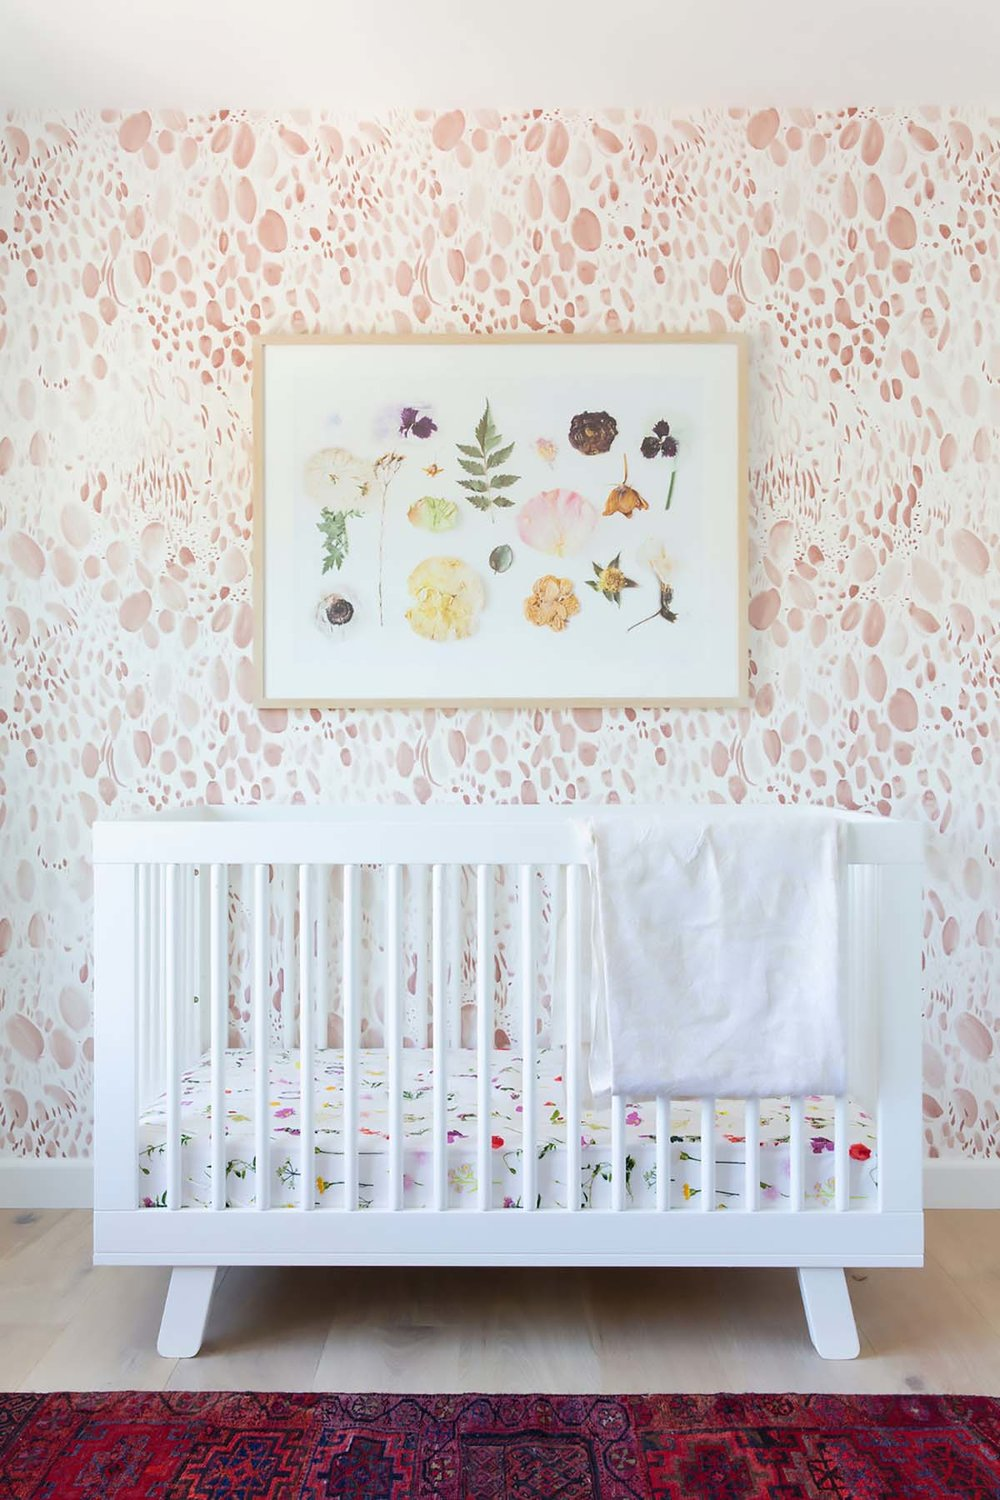 pressed flower art above crib in baby nursery